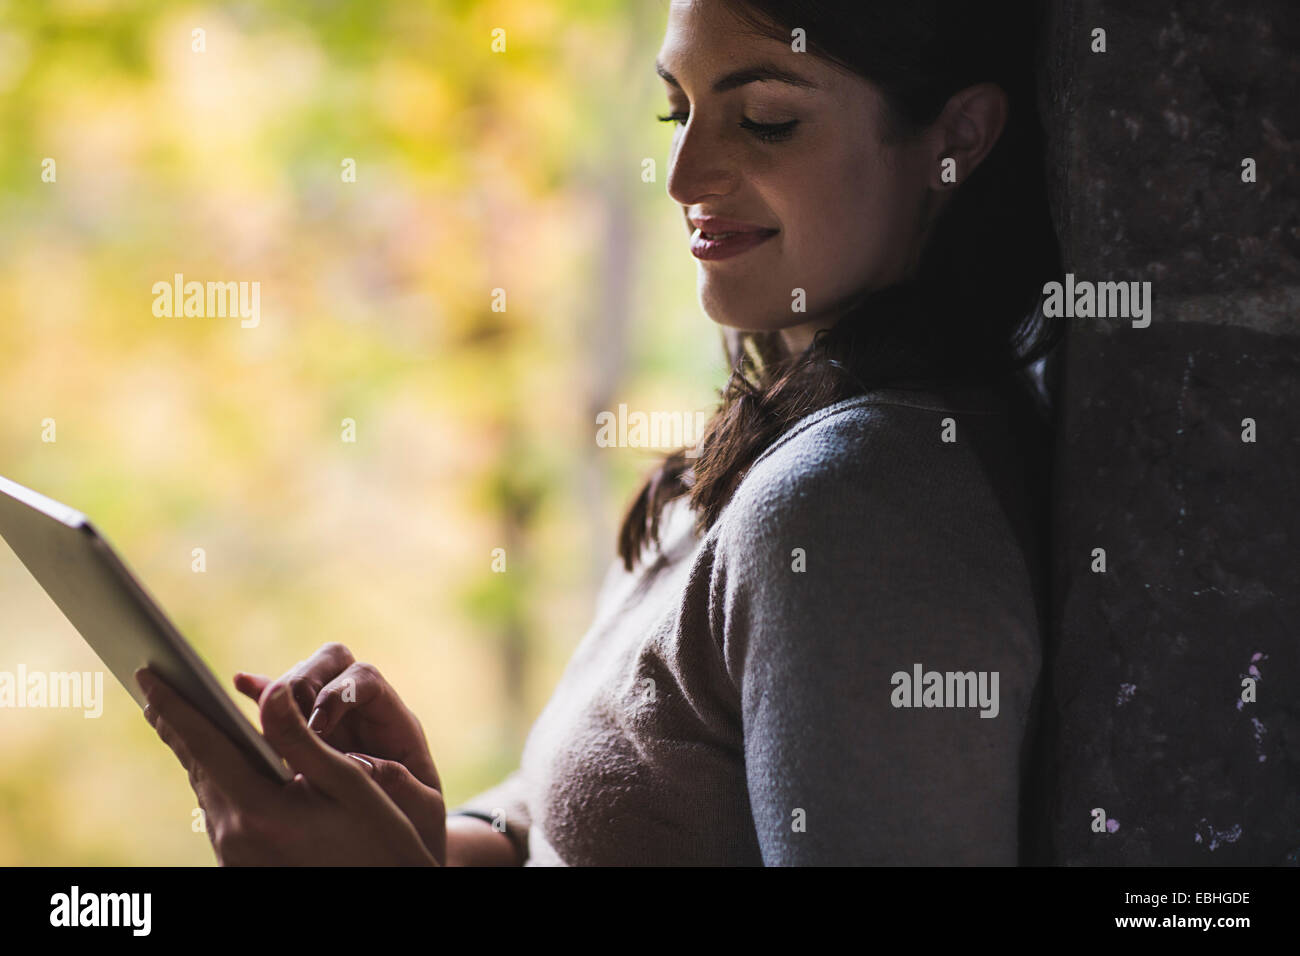 Young woman leaning against wall using touchscreen on digital tablet - Stock Image